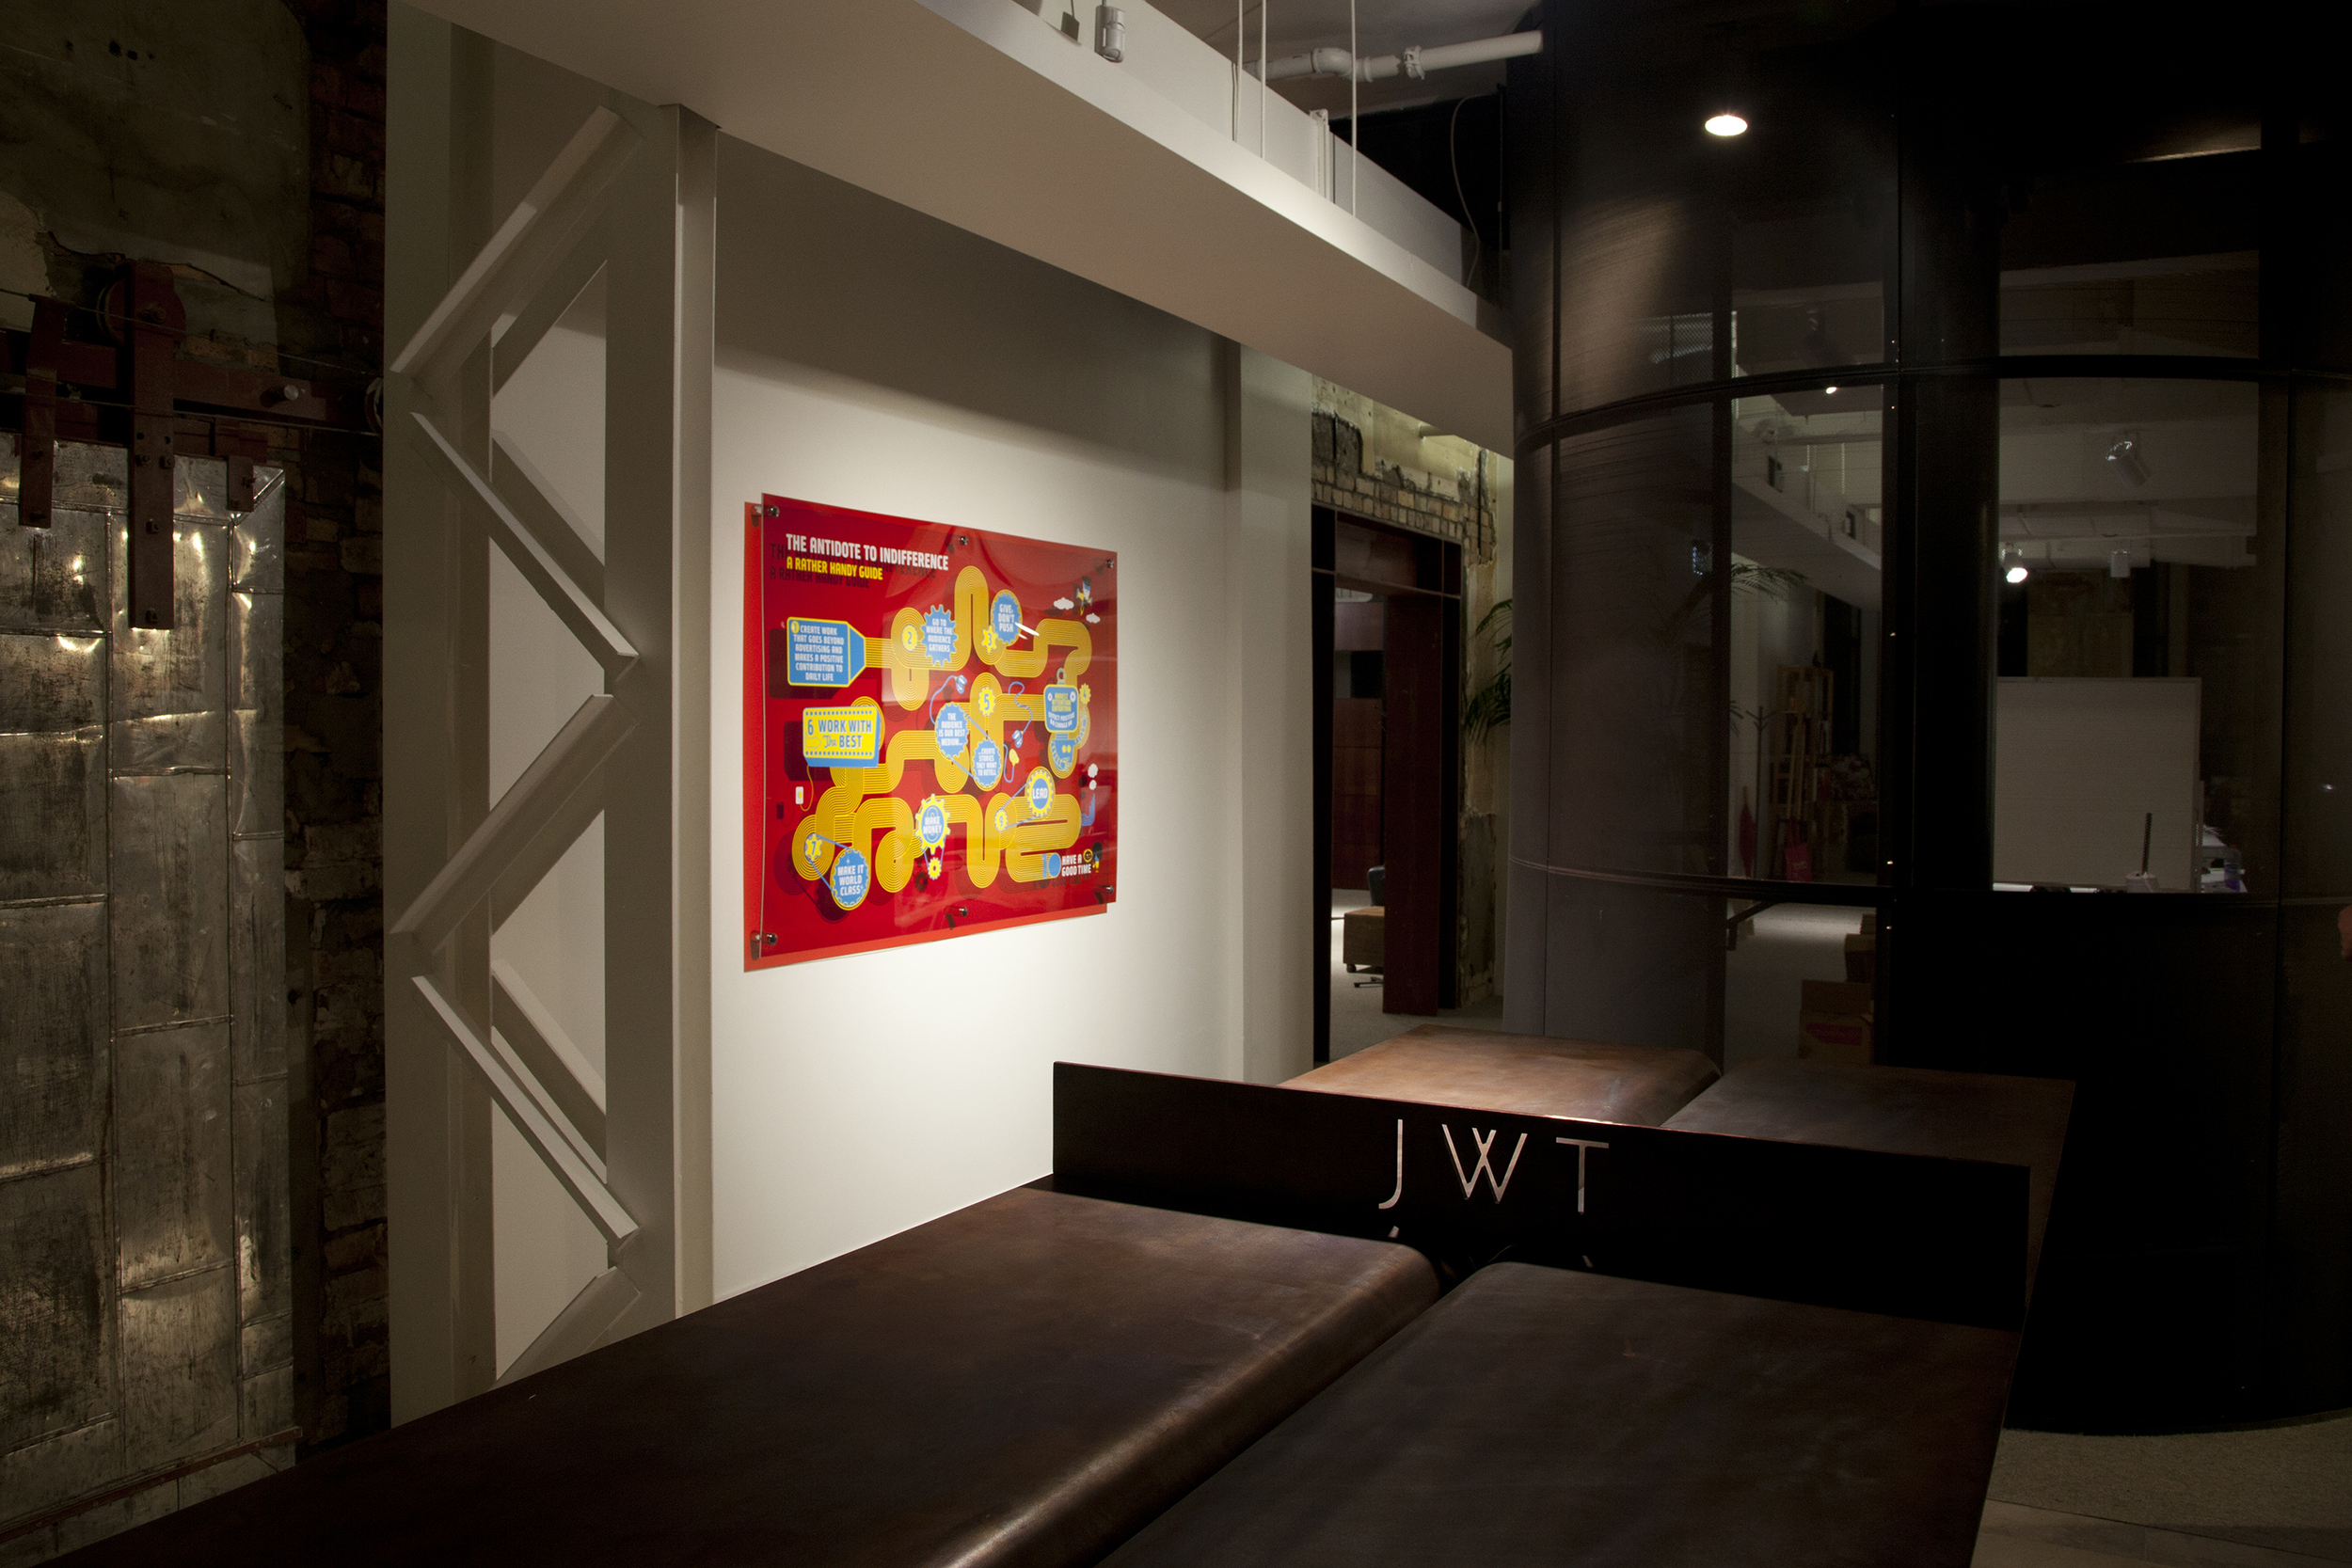 JWT interior design with a JWT sign in the foreground and vibrant artwork in the background